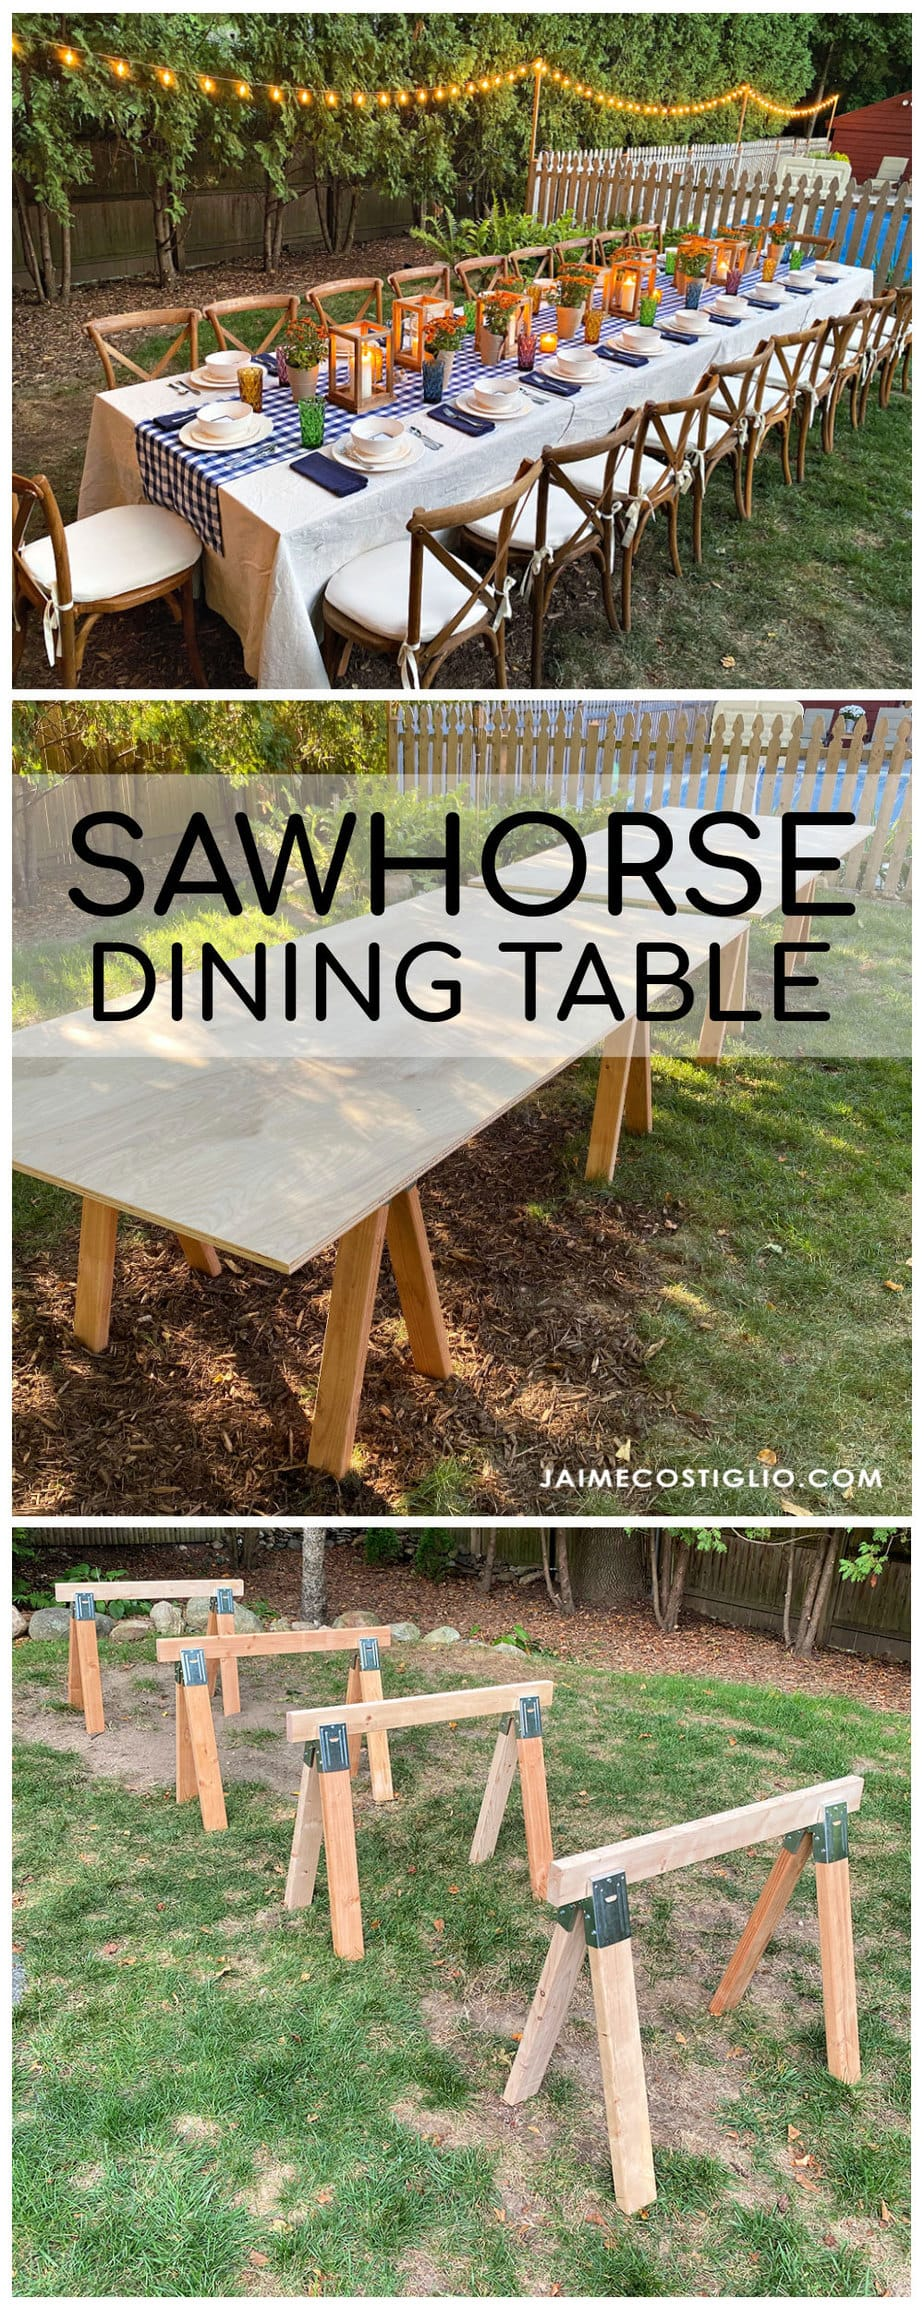 sawhorse dining table collage